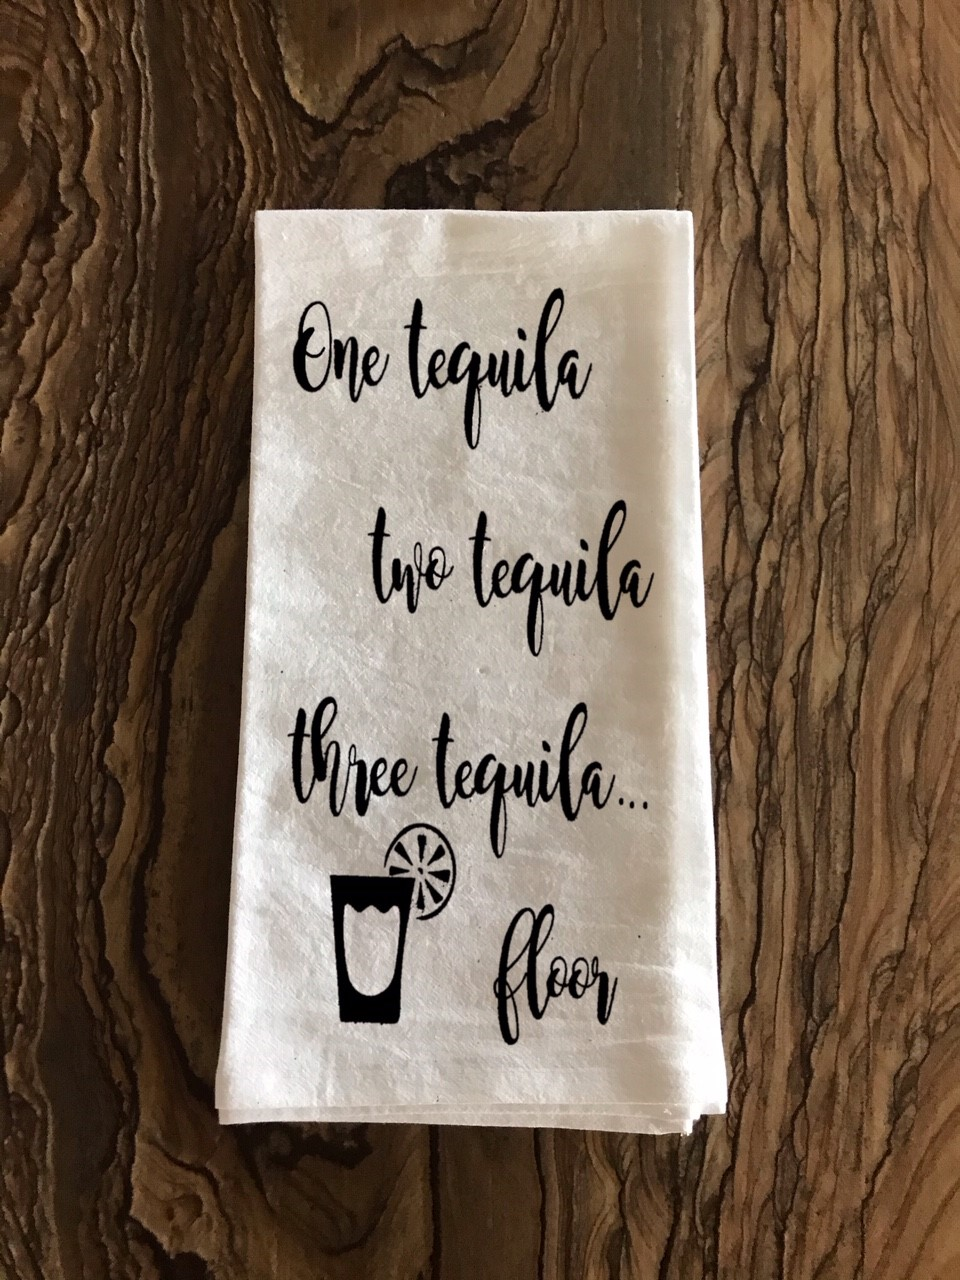 One Tequila.  Two Tequila.  Three Tequila... Floor.  Flour Sack Tea Towel